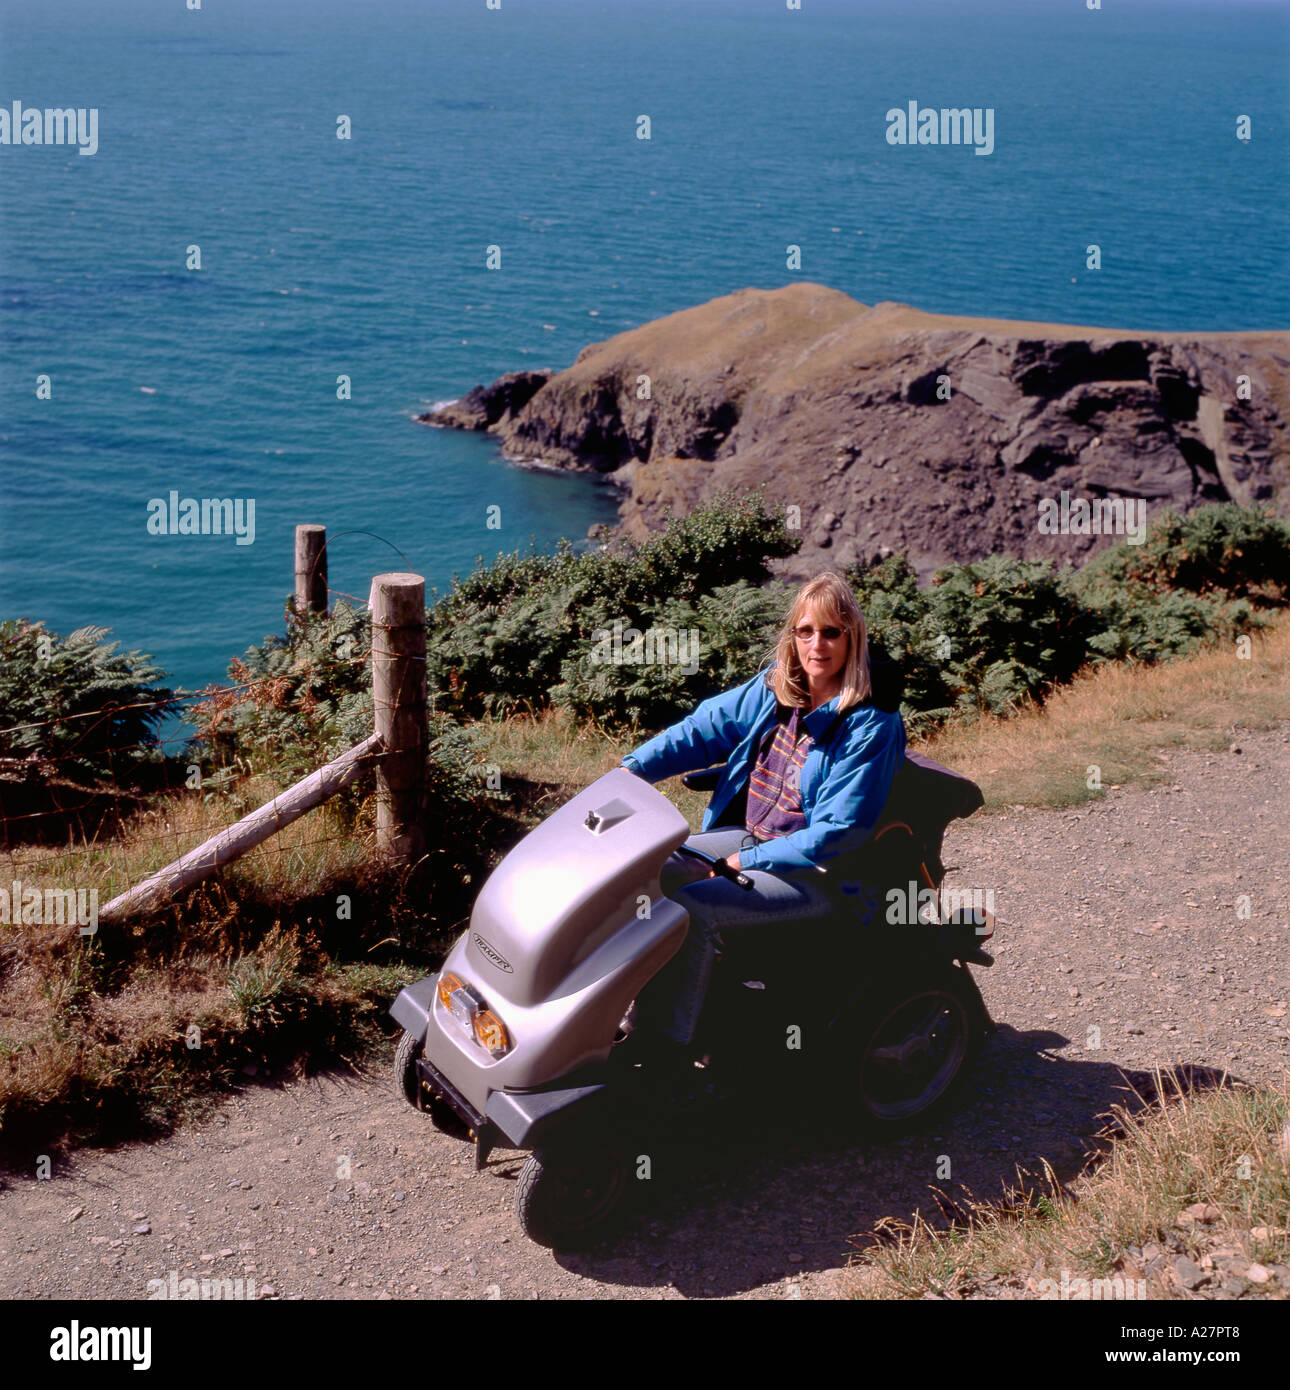 A disabled woman driving an all terrain motorized vehicle on the coastal path Llangranog Ceredigion Wales UK   KATHY DEWITT - Stock Image